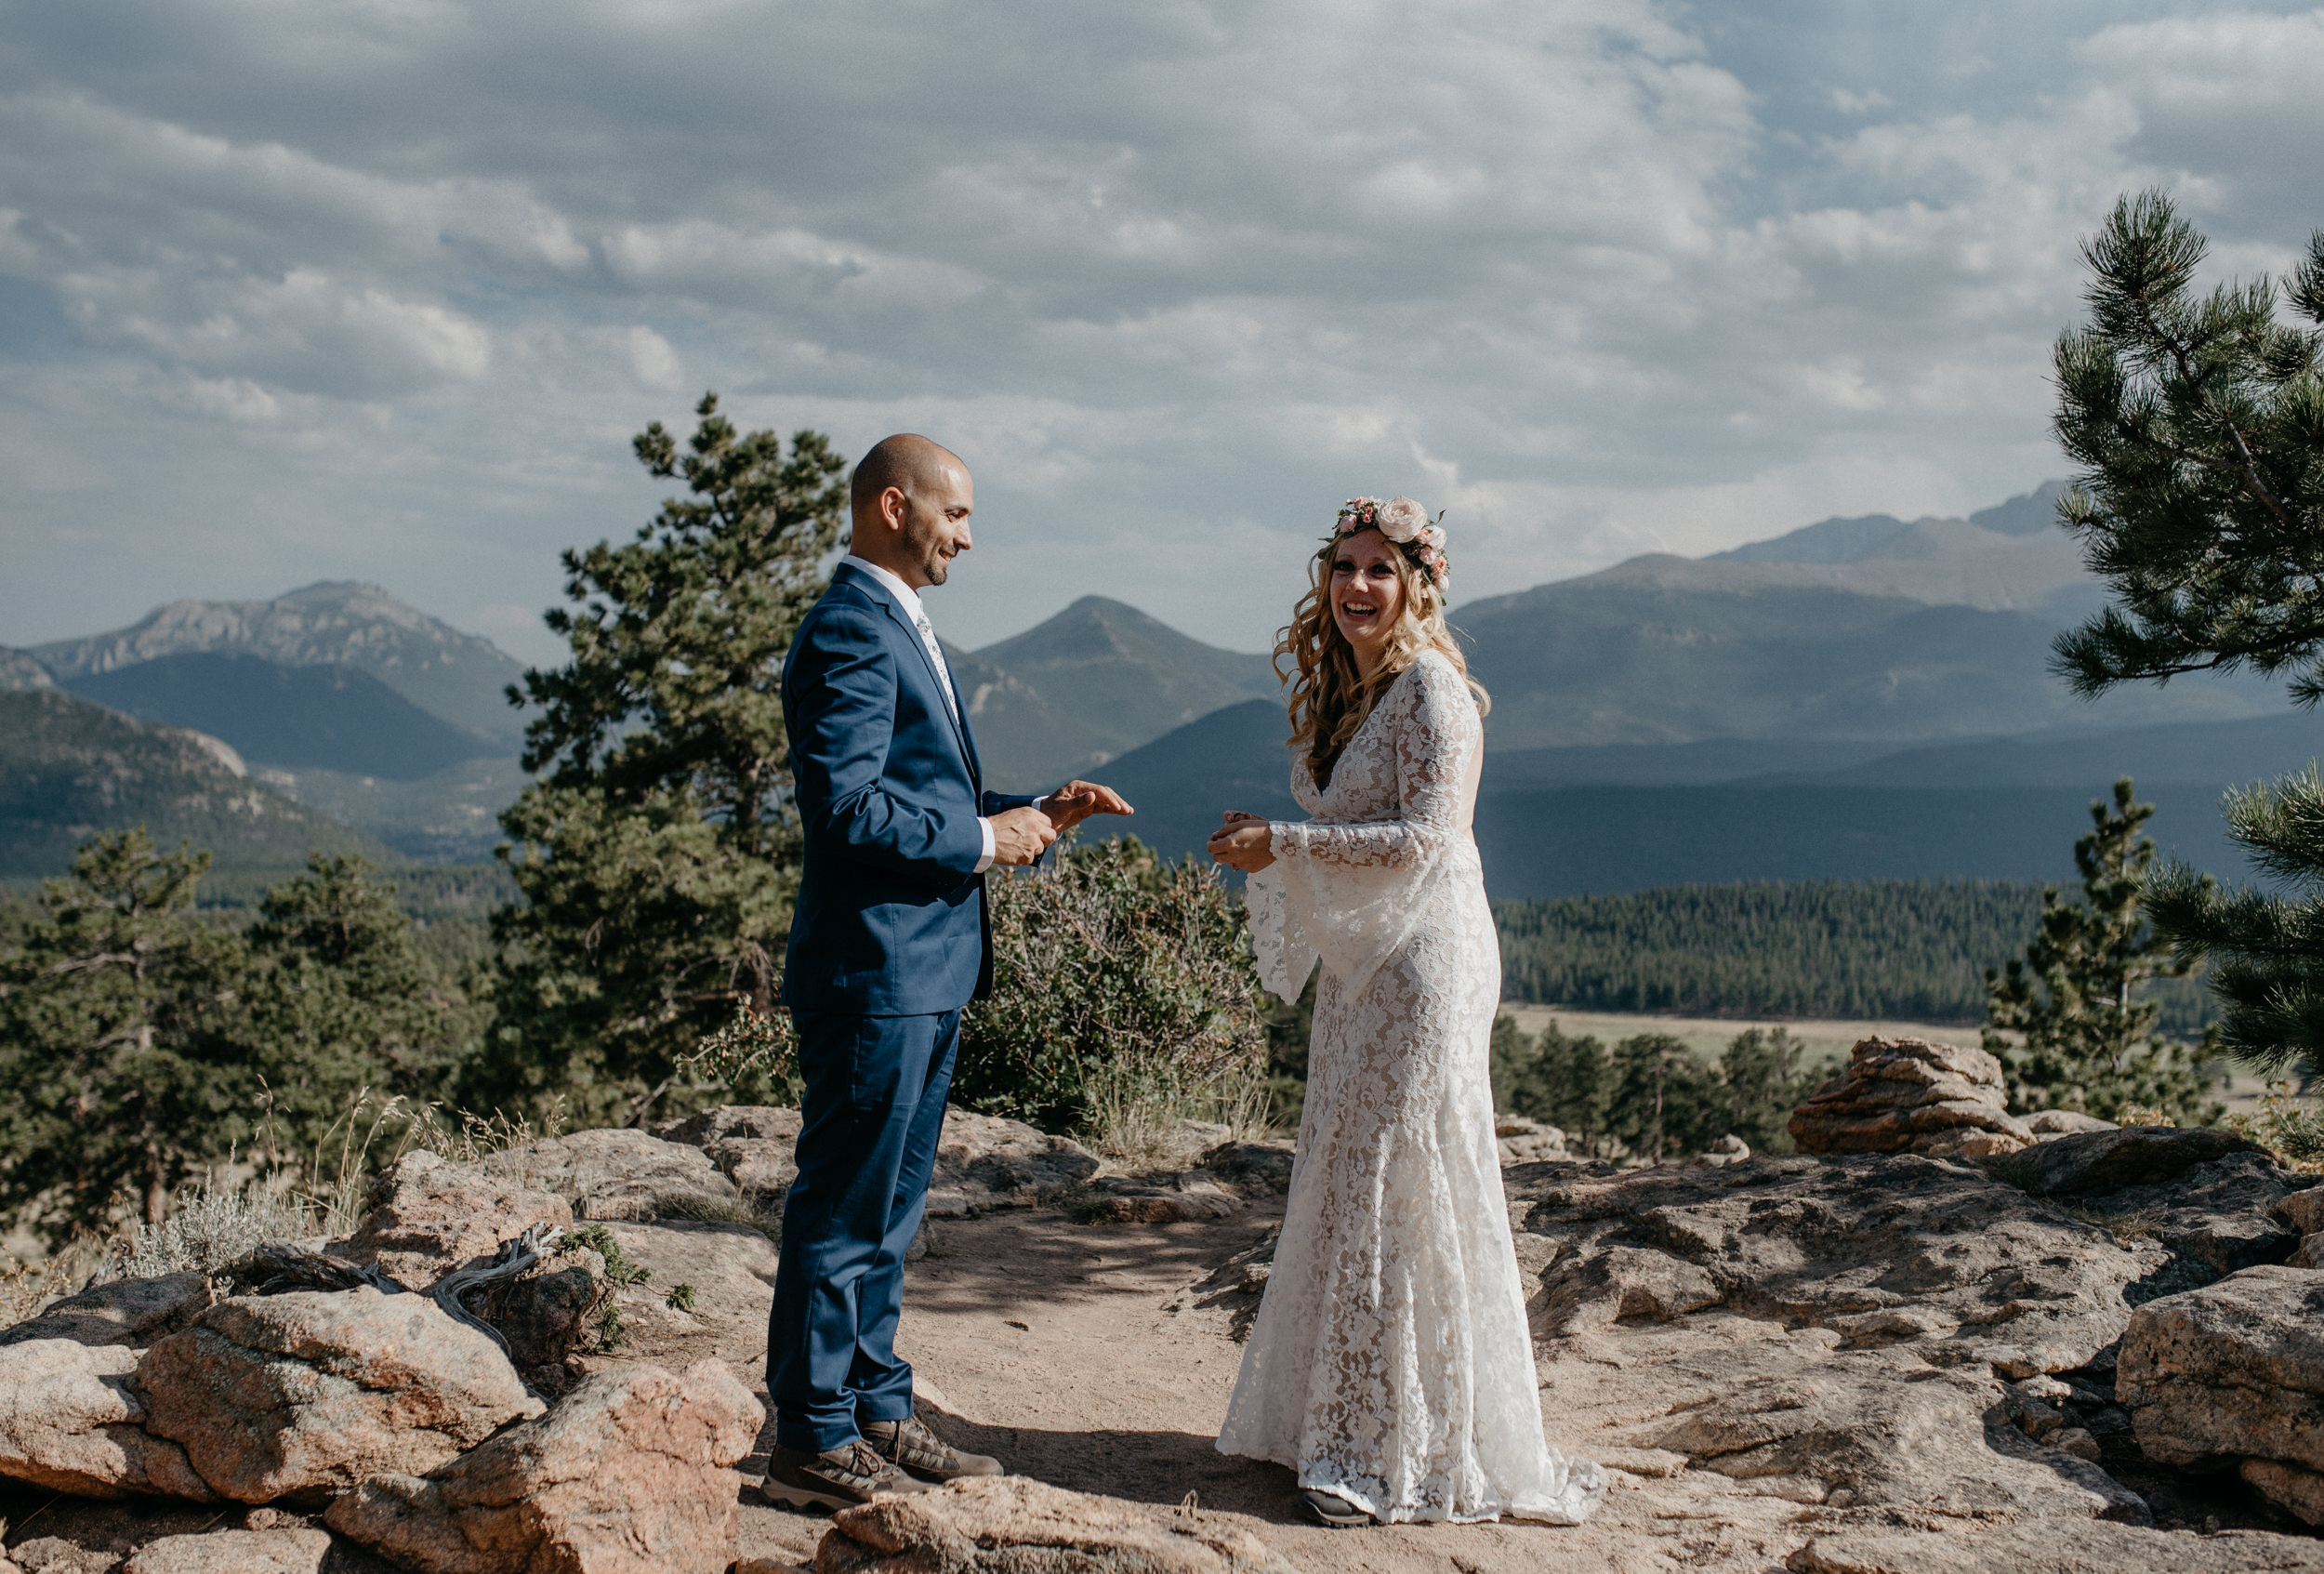 Ceremony at 3M curve in Estes Park. Colorado elopement and wedding photography.